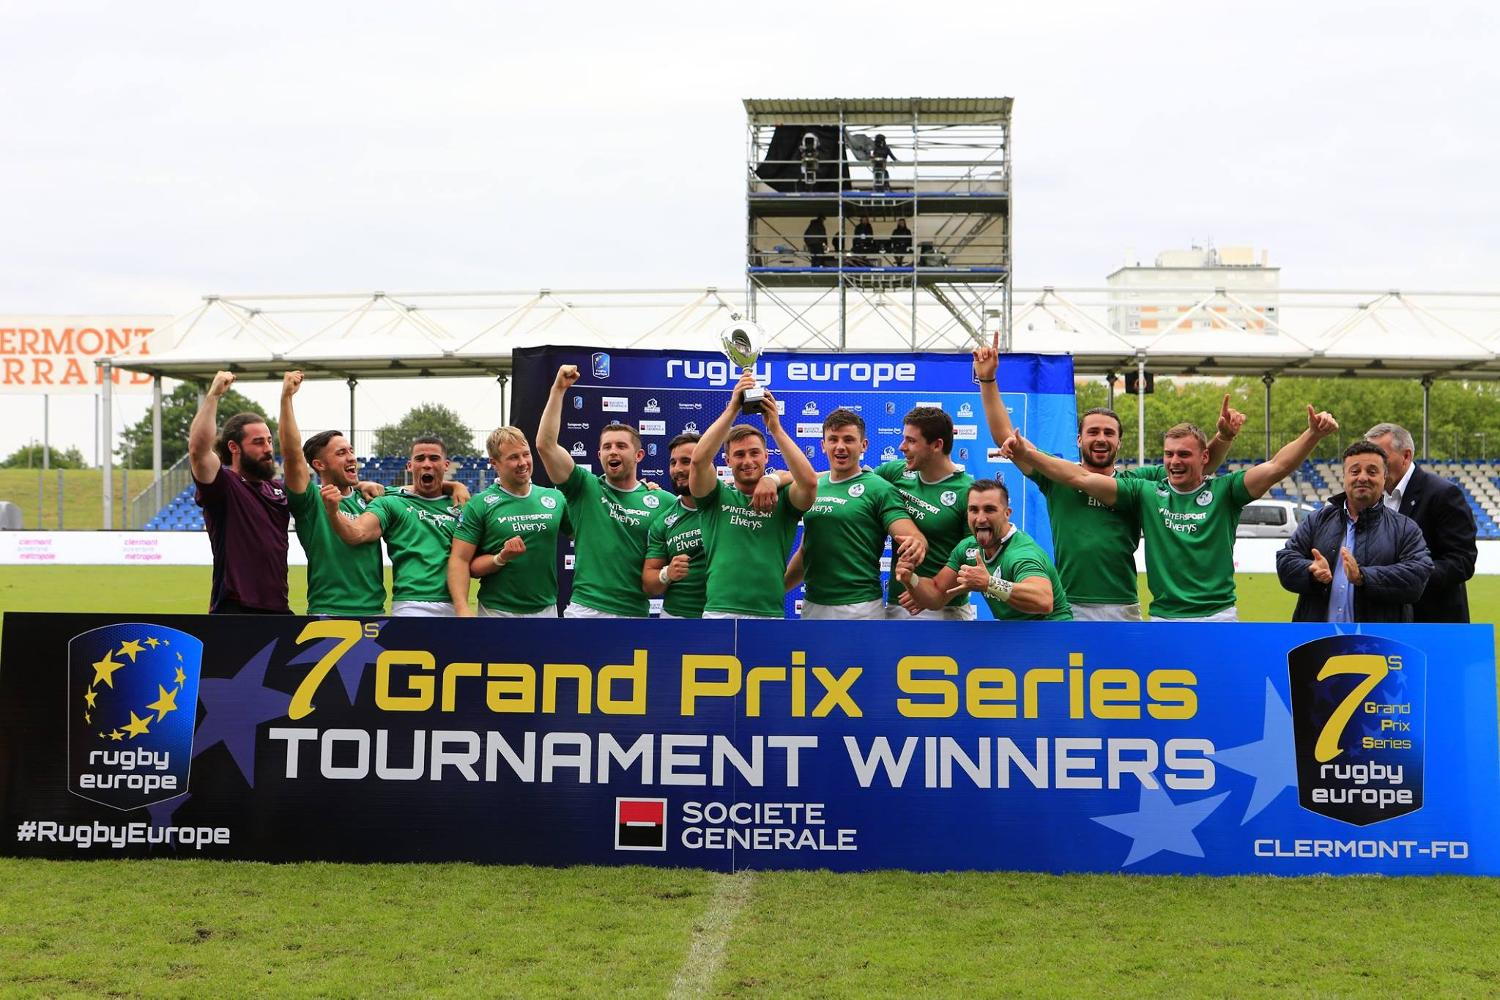 Rugby Europe Sevens Grand Prix Series